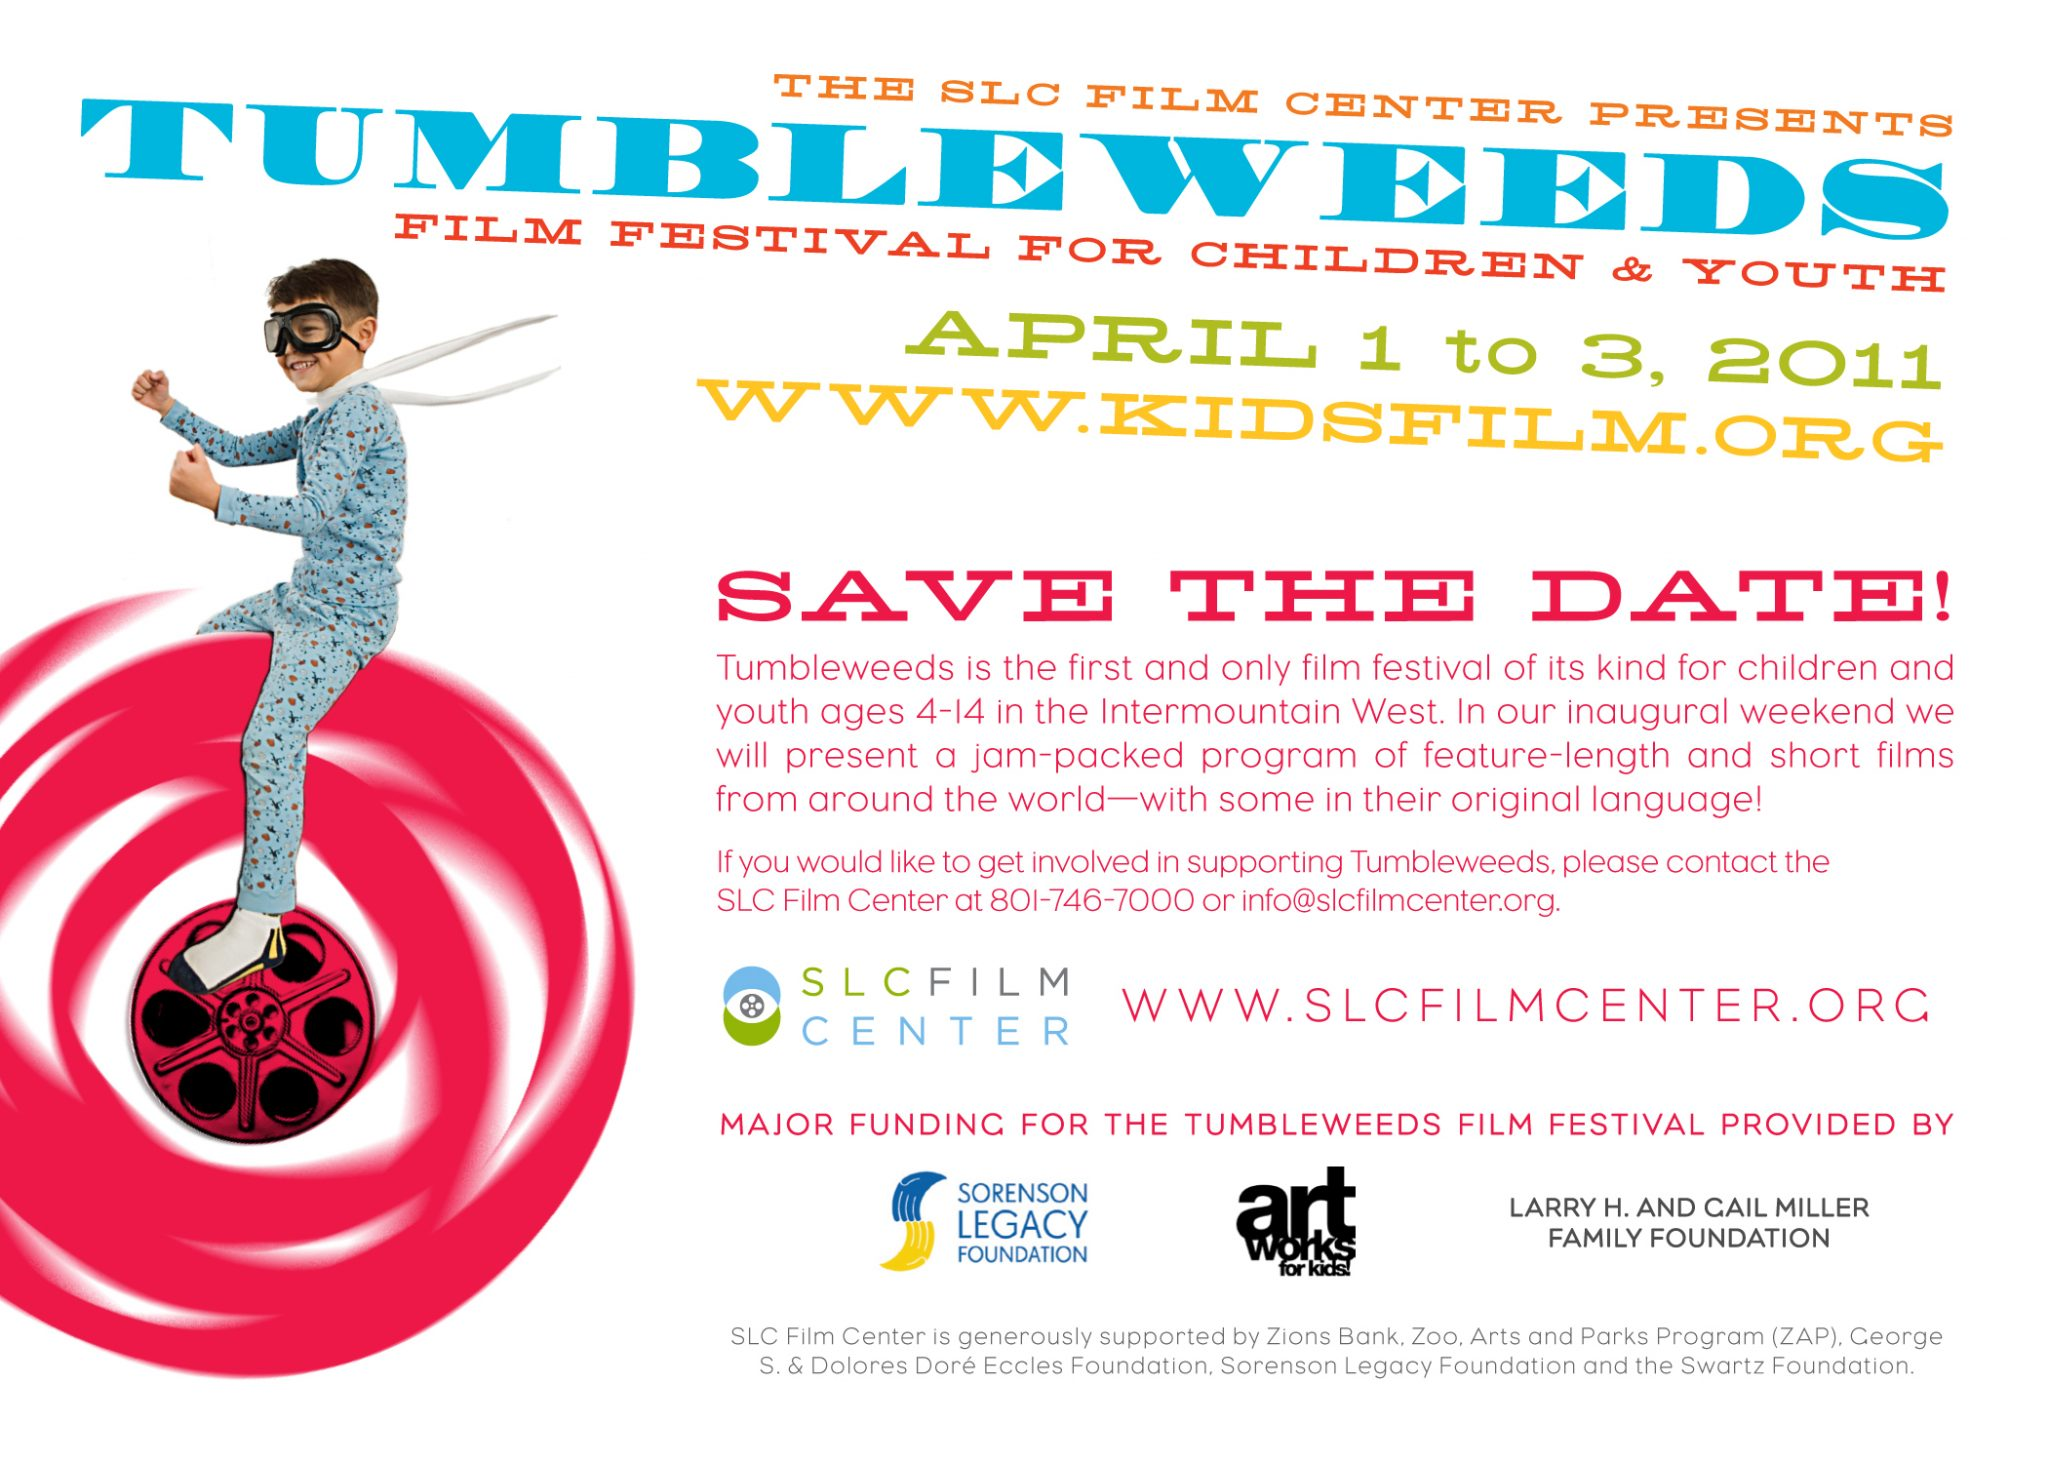 Inaugural Tumbleweeds Film Festival for Children and Youth in Salt Lake City, Utah